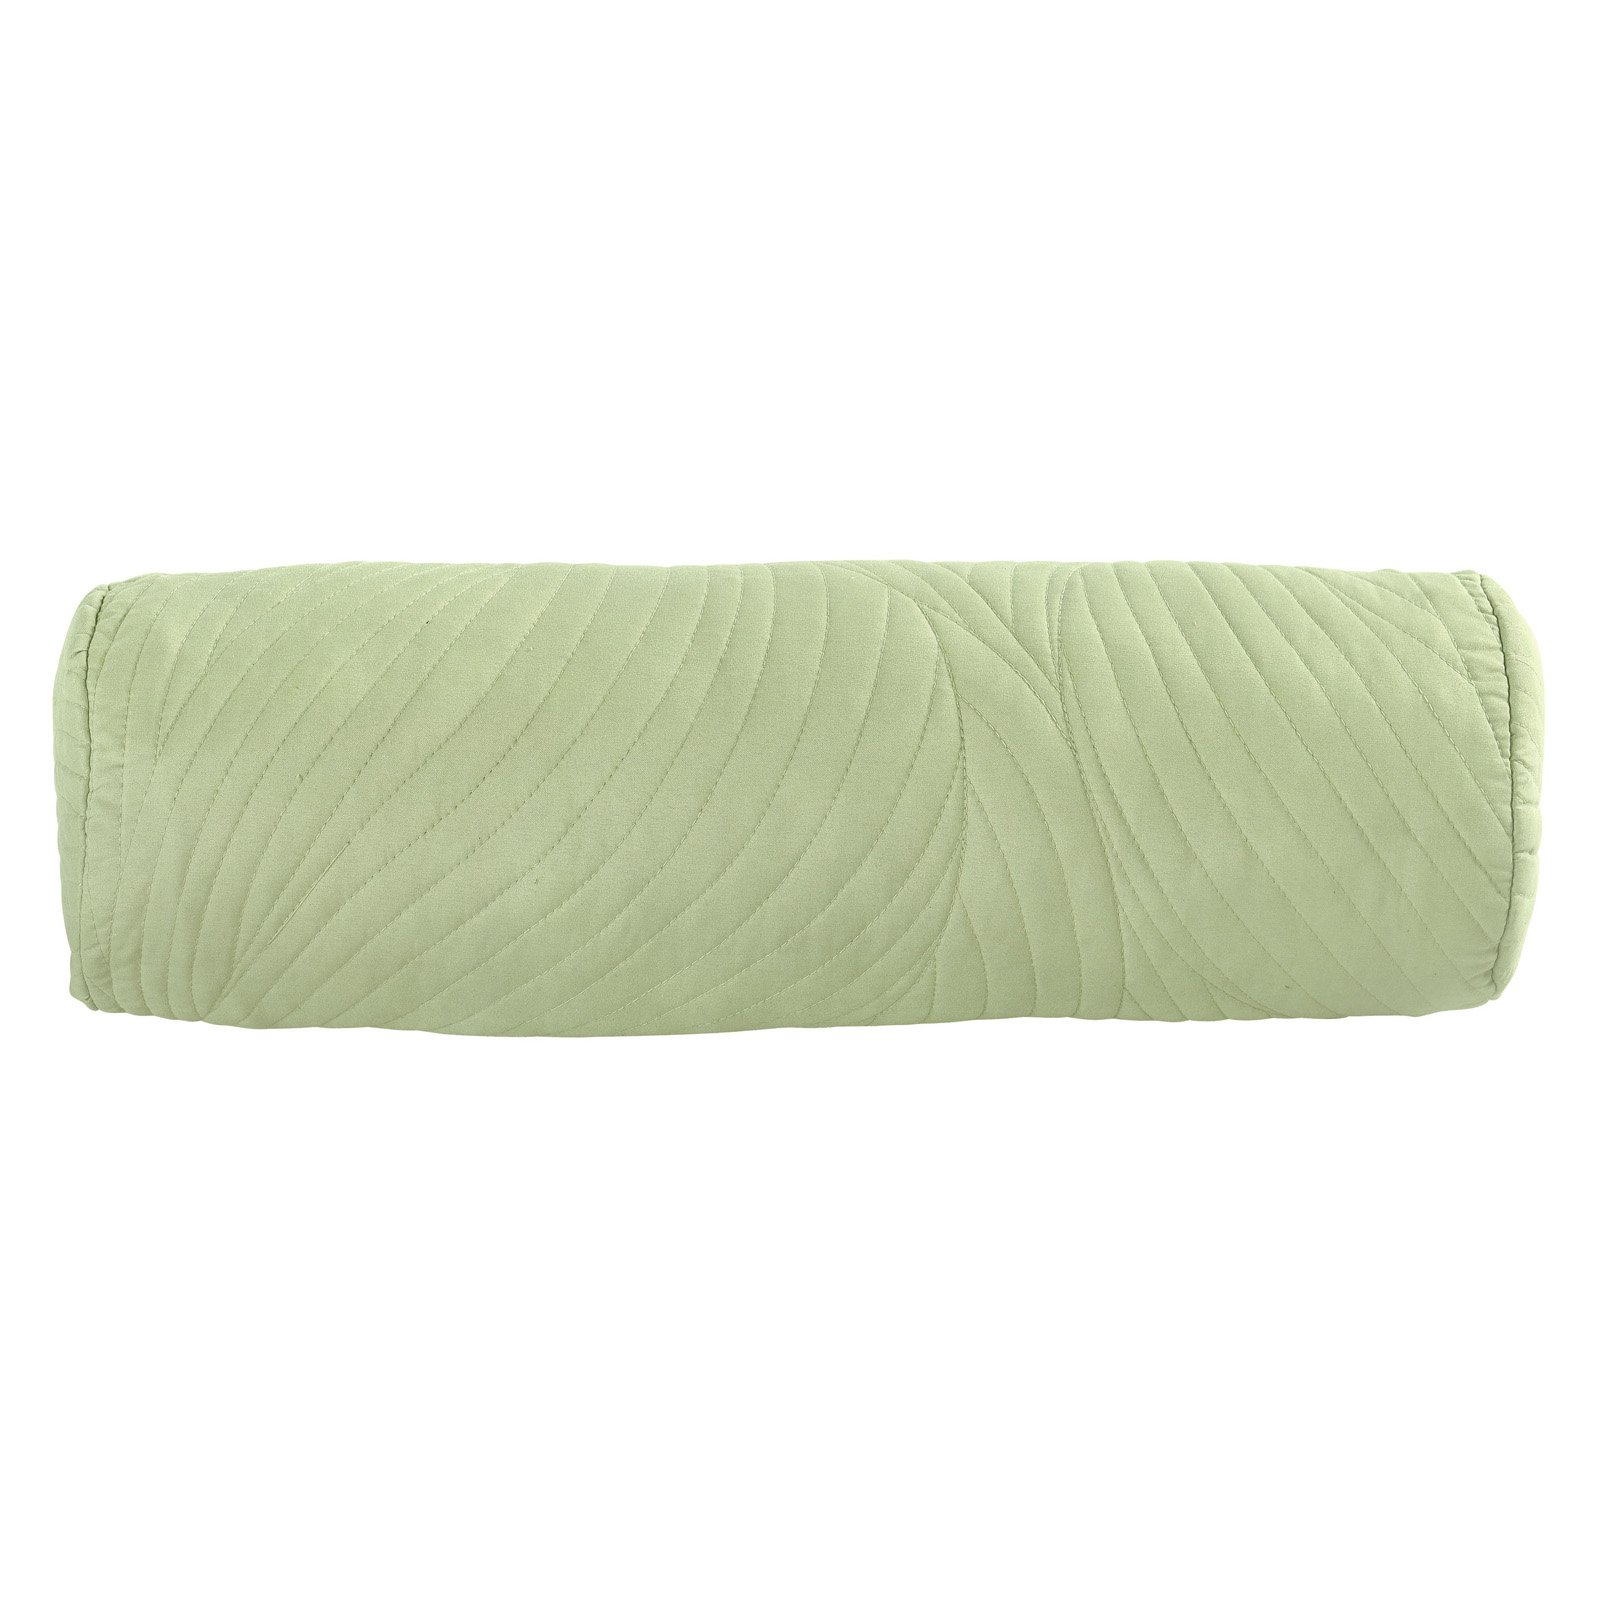 brielle embroidered stream bolster pillow by brielle